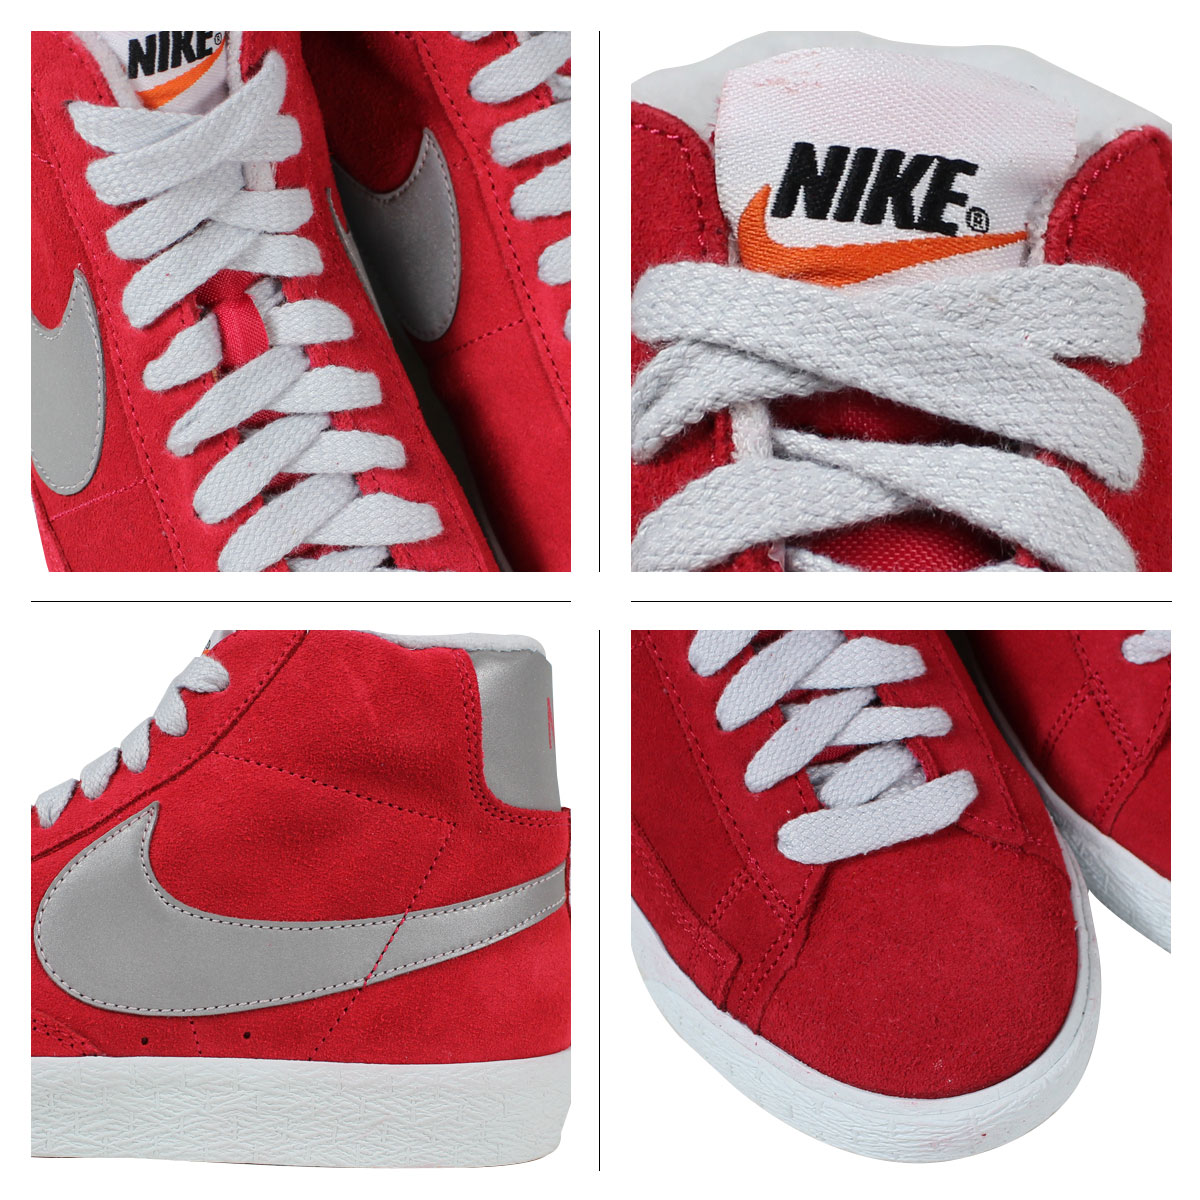 538,282-603 nike NIKE BLAZER MID PRM VNTG SUEDE sneakers blazer mid premium vintage suede men gap Dis basketball shoes suede cloth red